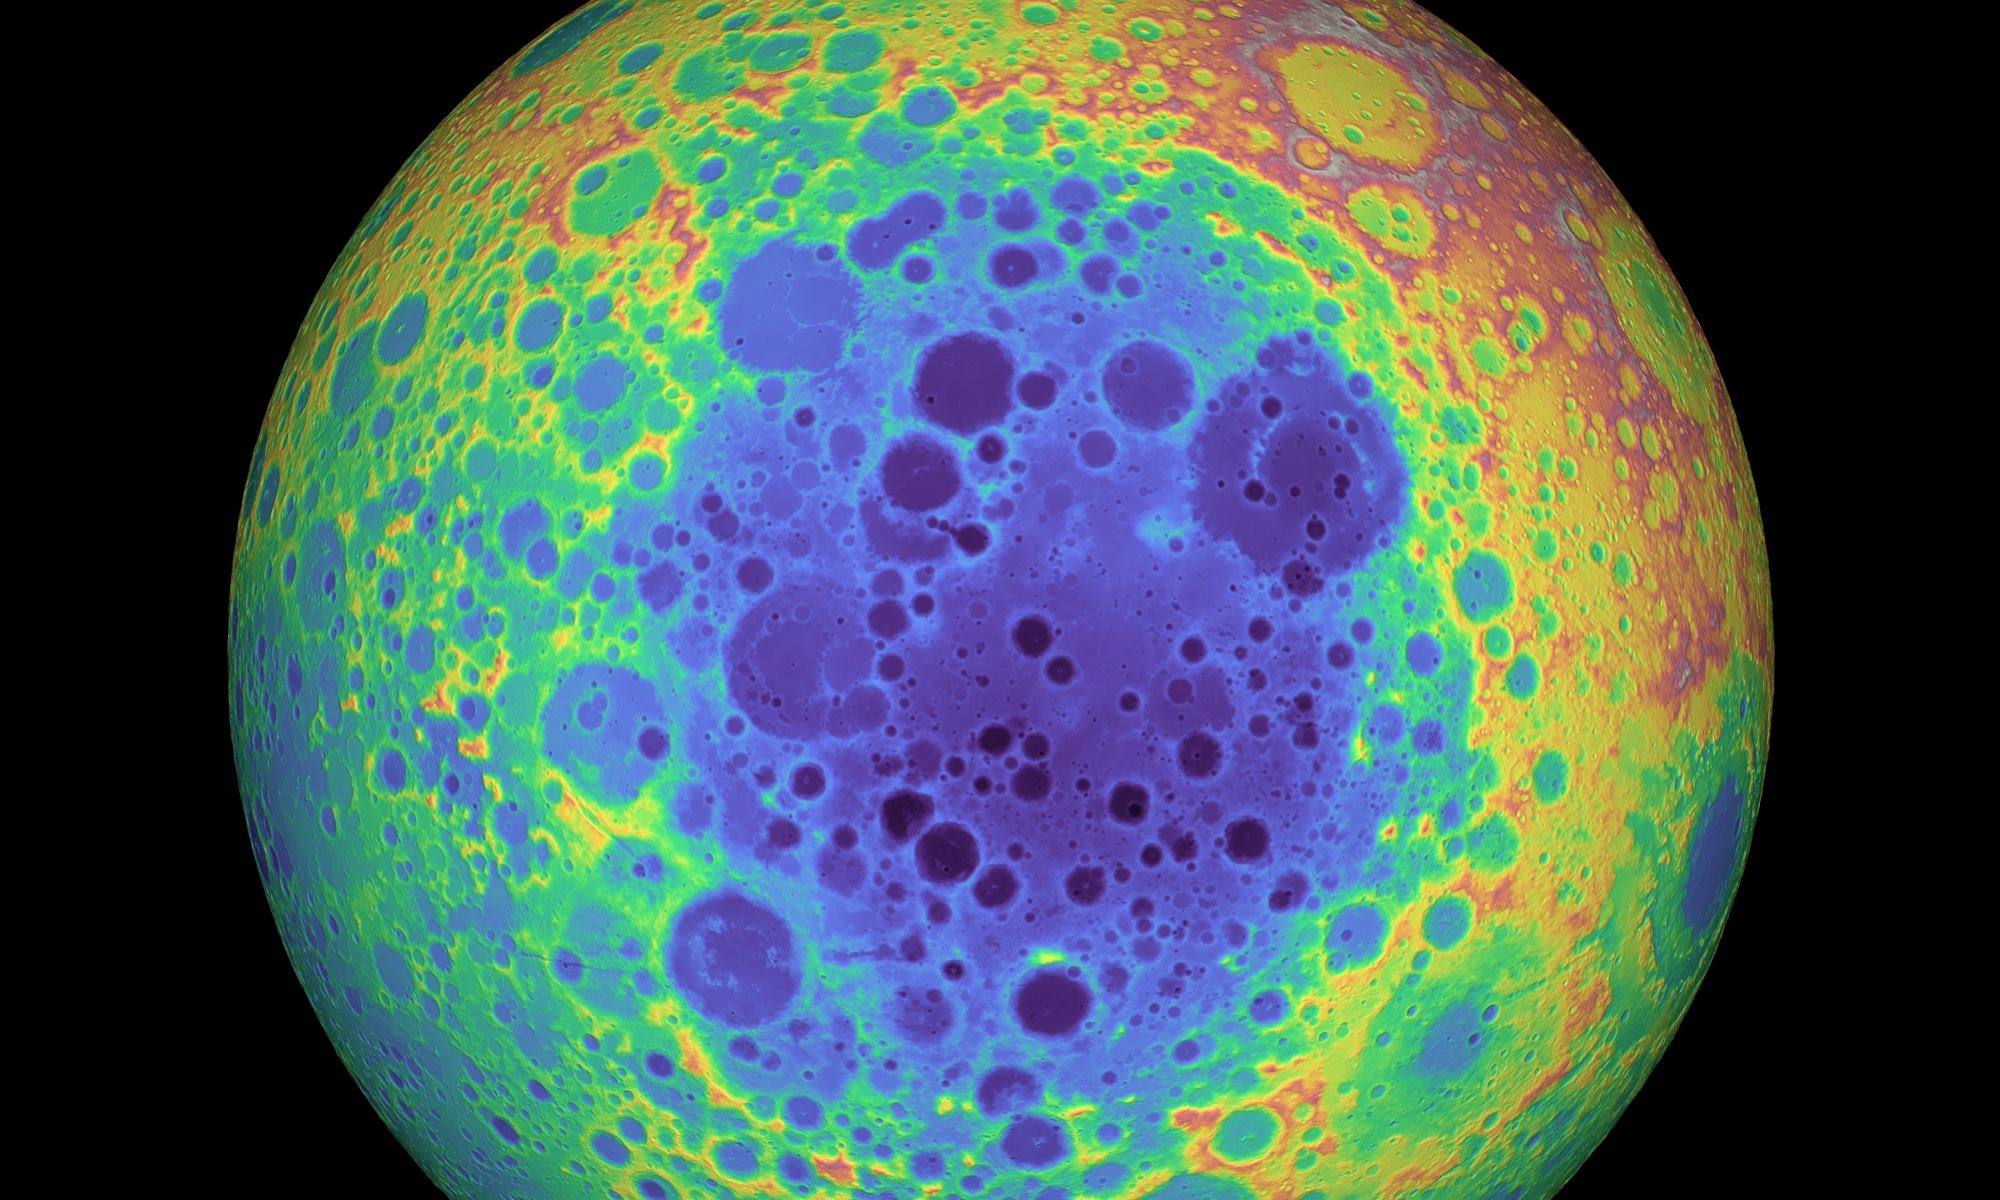 Elevation data of the Moon showing the South Pole-Aitken Basin. Credit: NASA/GSFC/University of Arizona